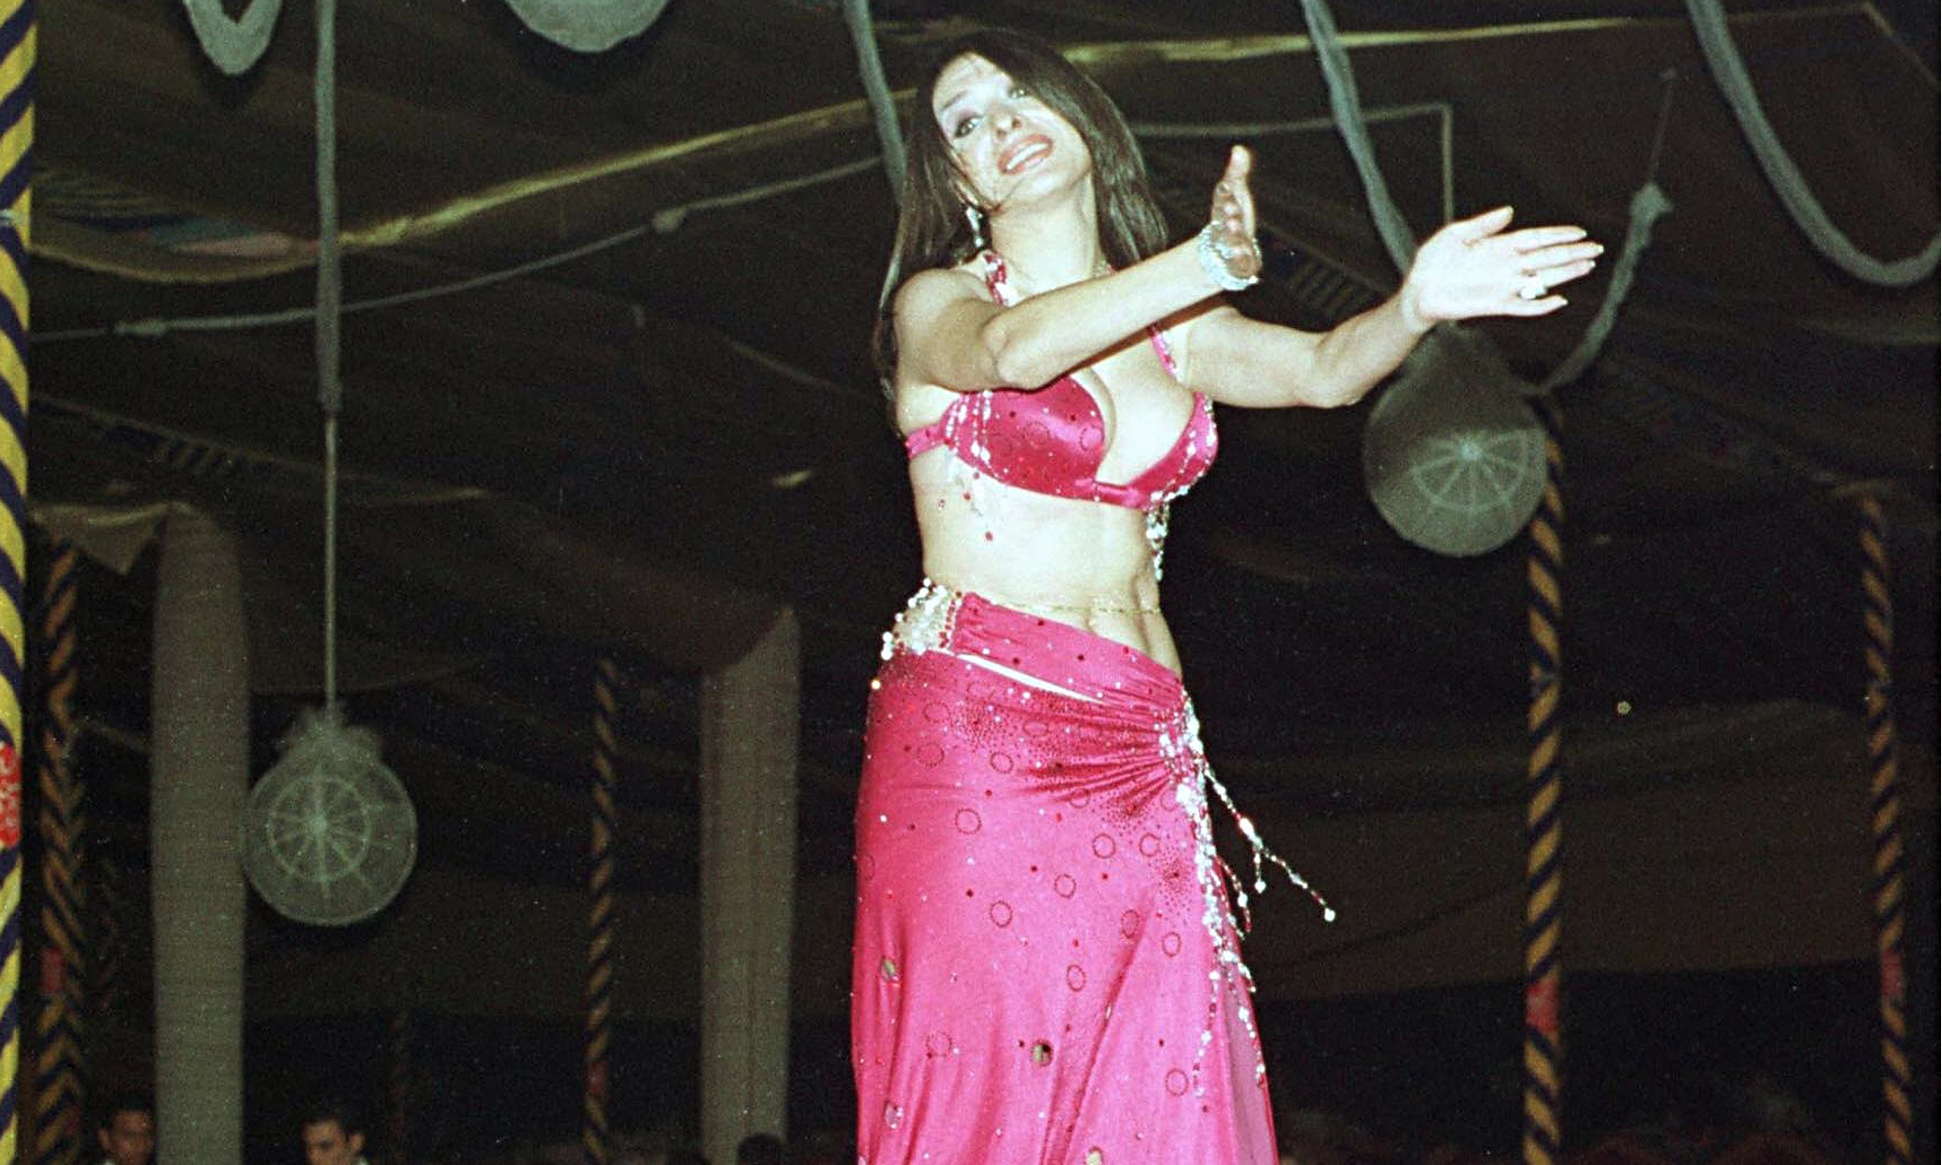 Egyptian belly-dancing show shelved after religious ...